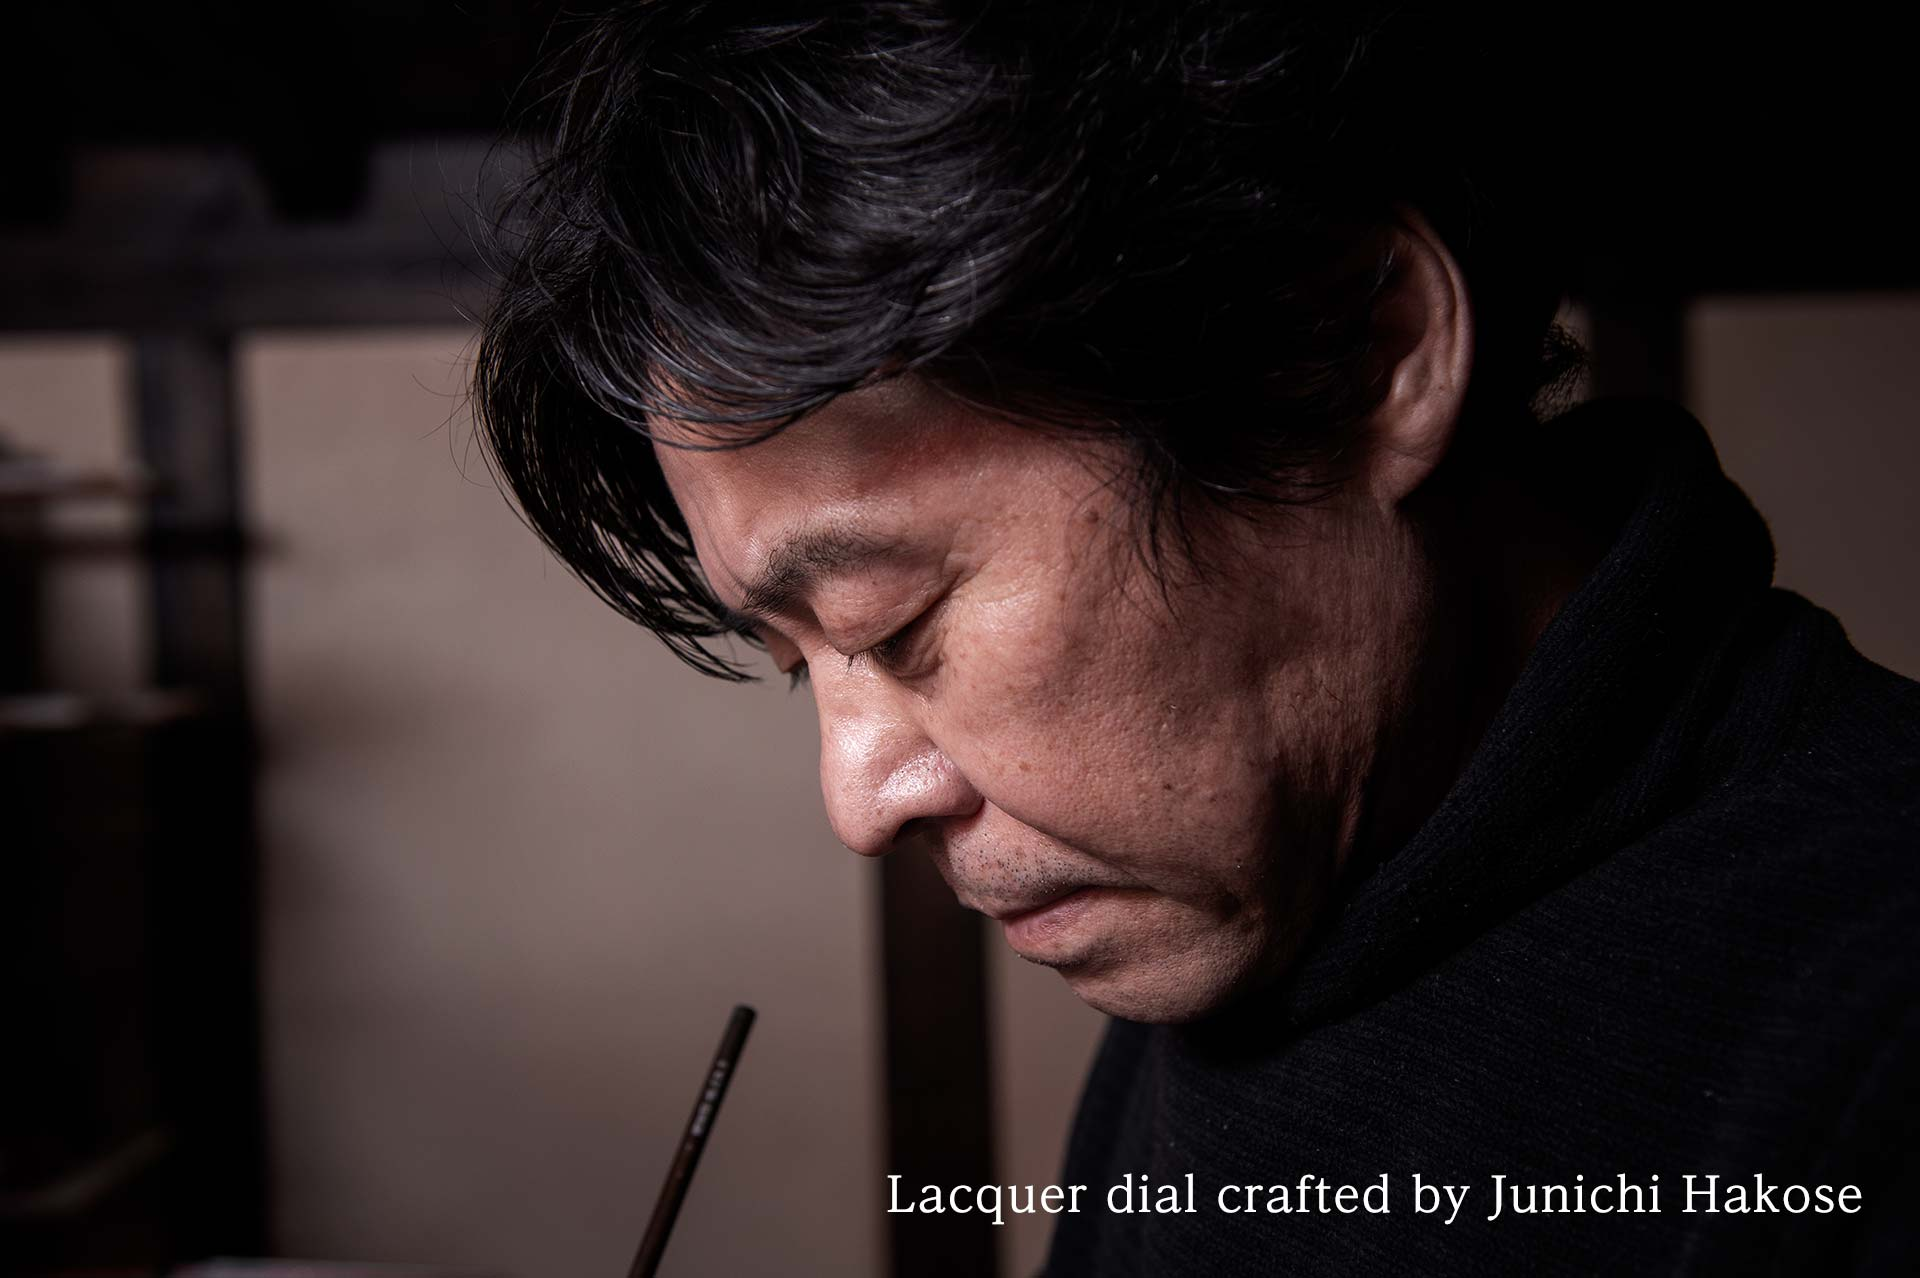 Lacquer dial crafted by Junichi Hakose